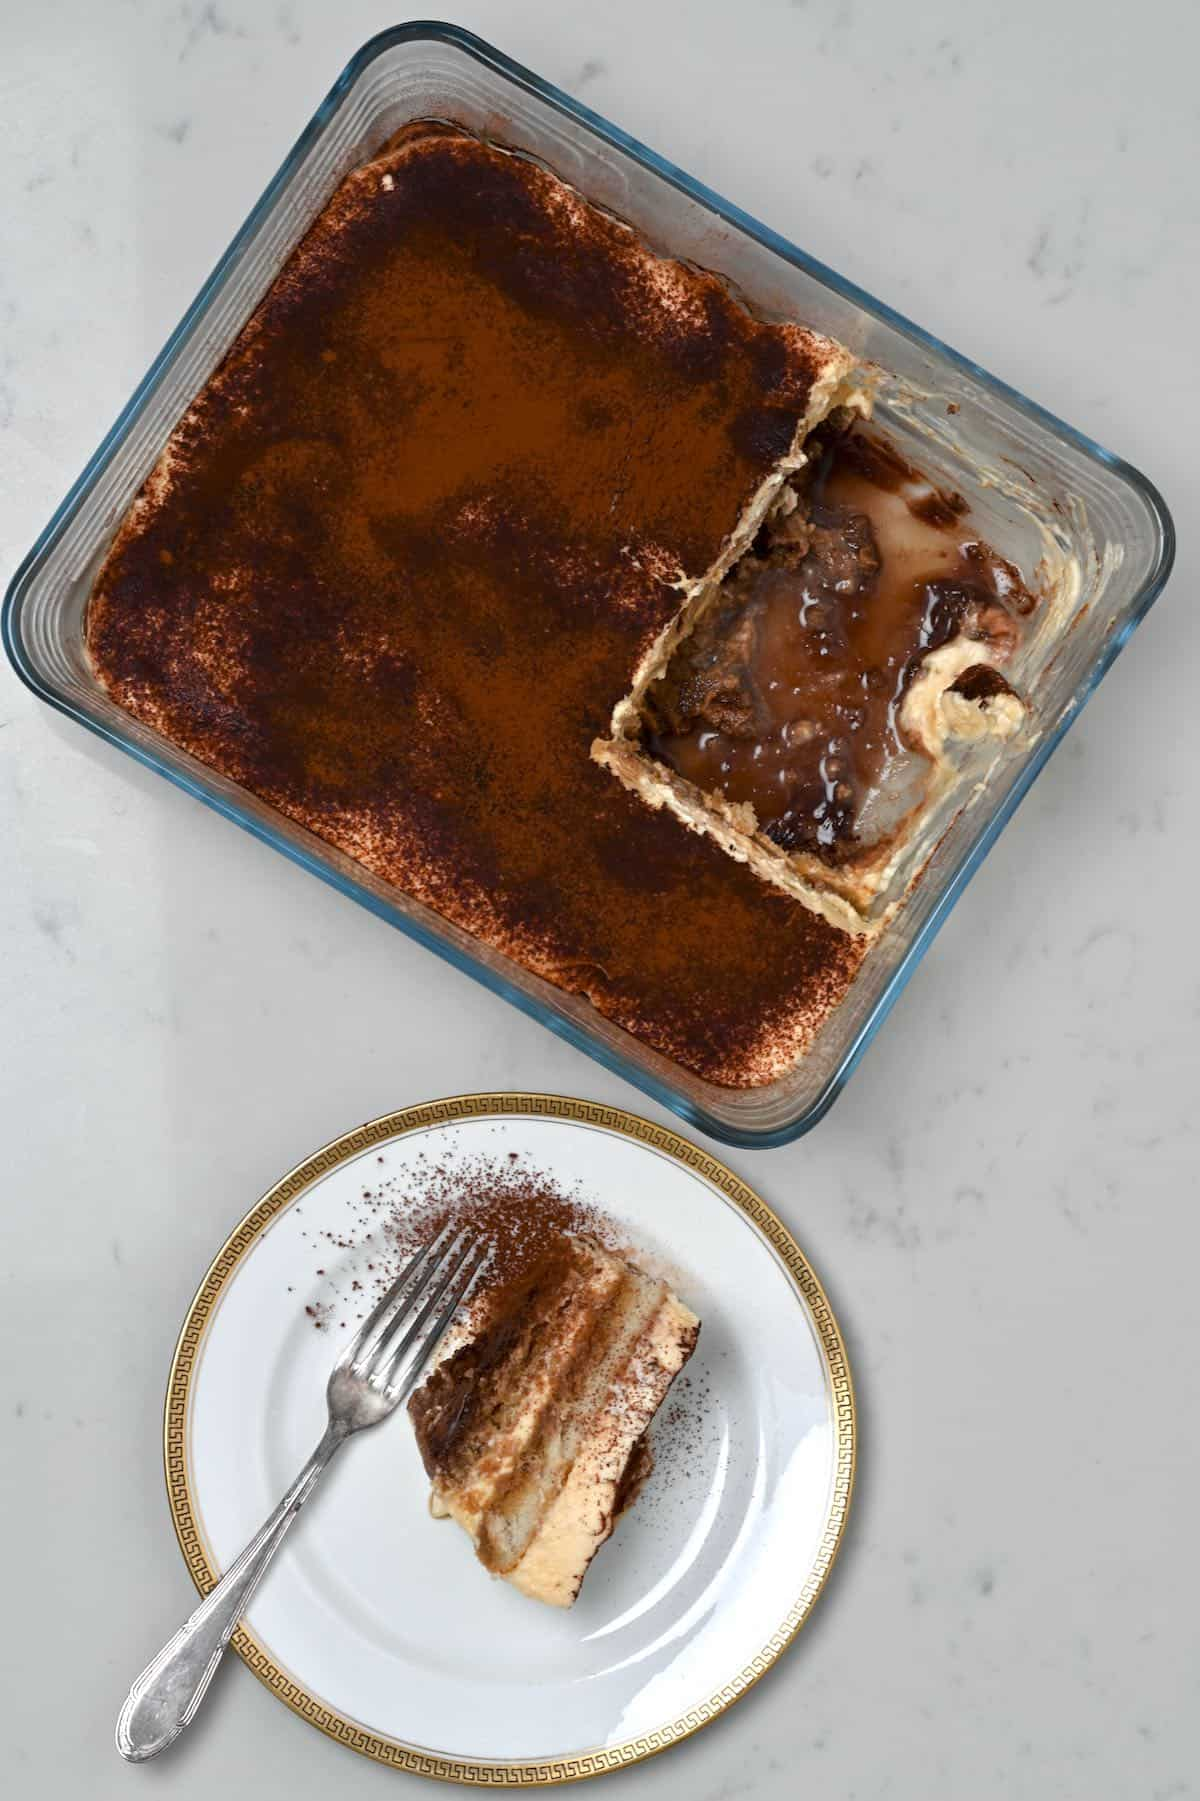 Tiramisu and a serving of it in a plate